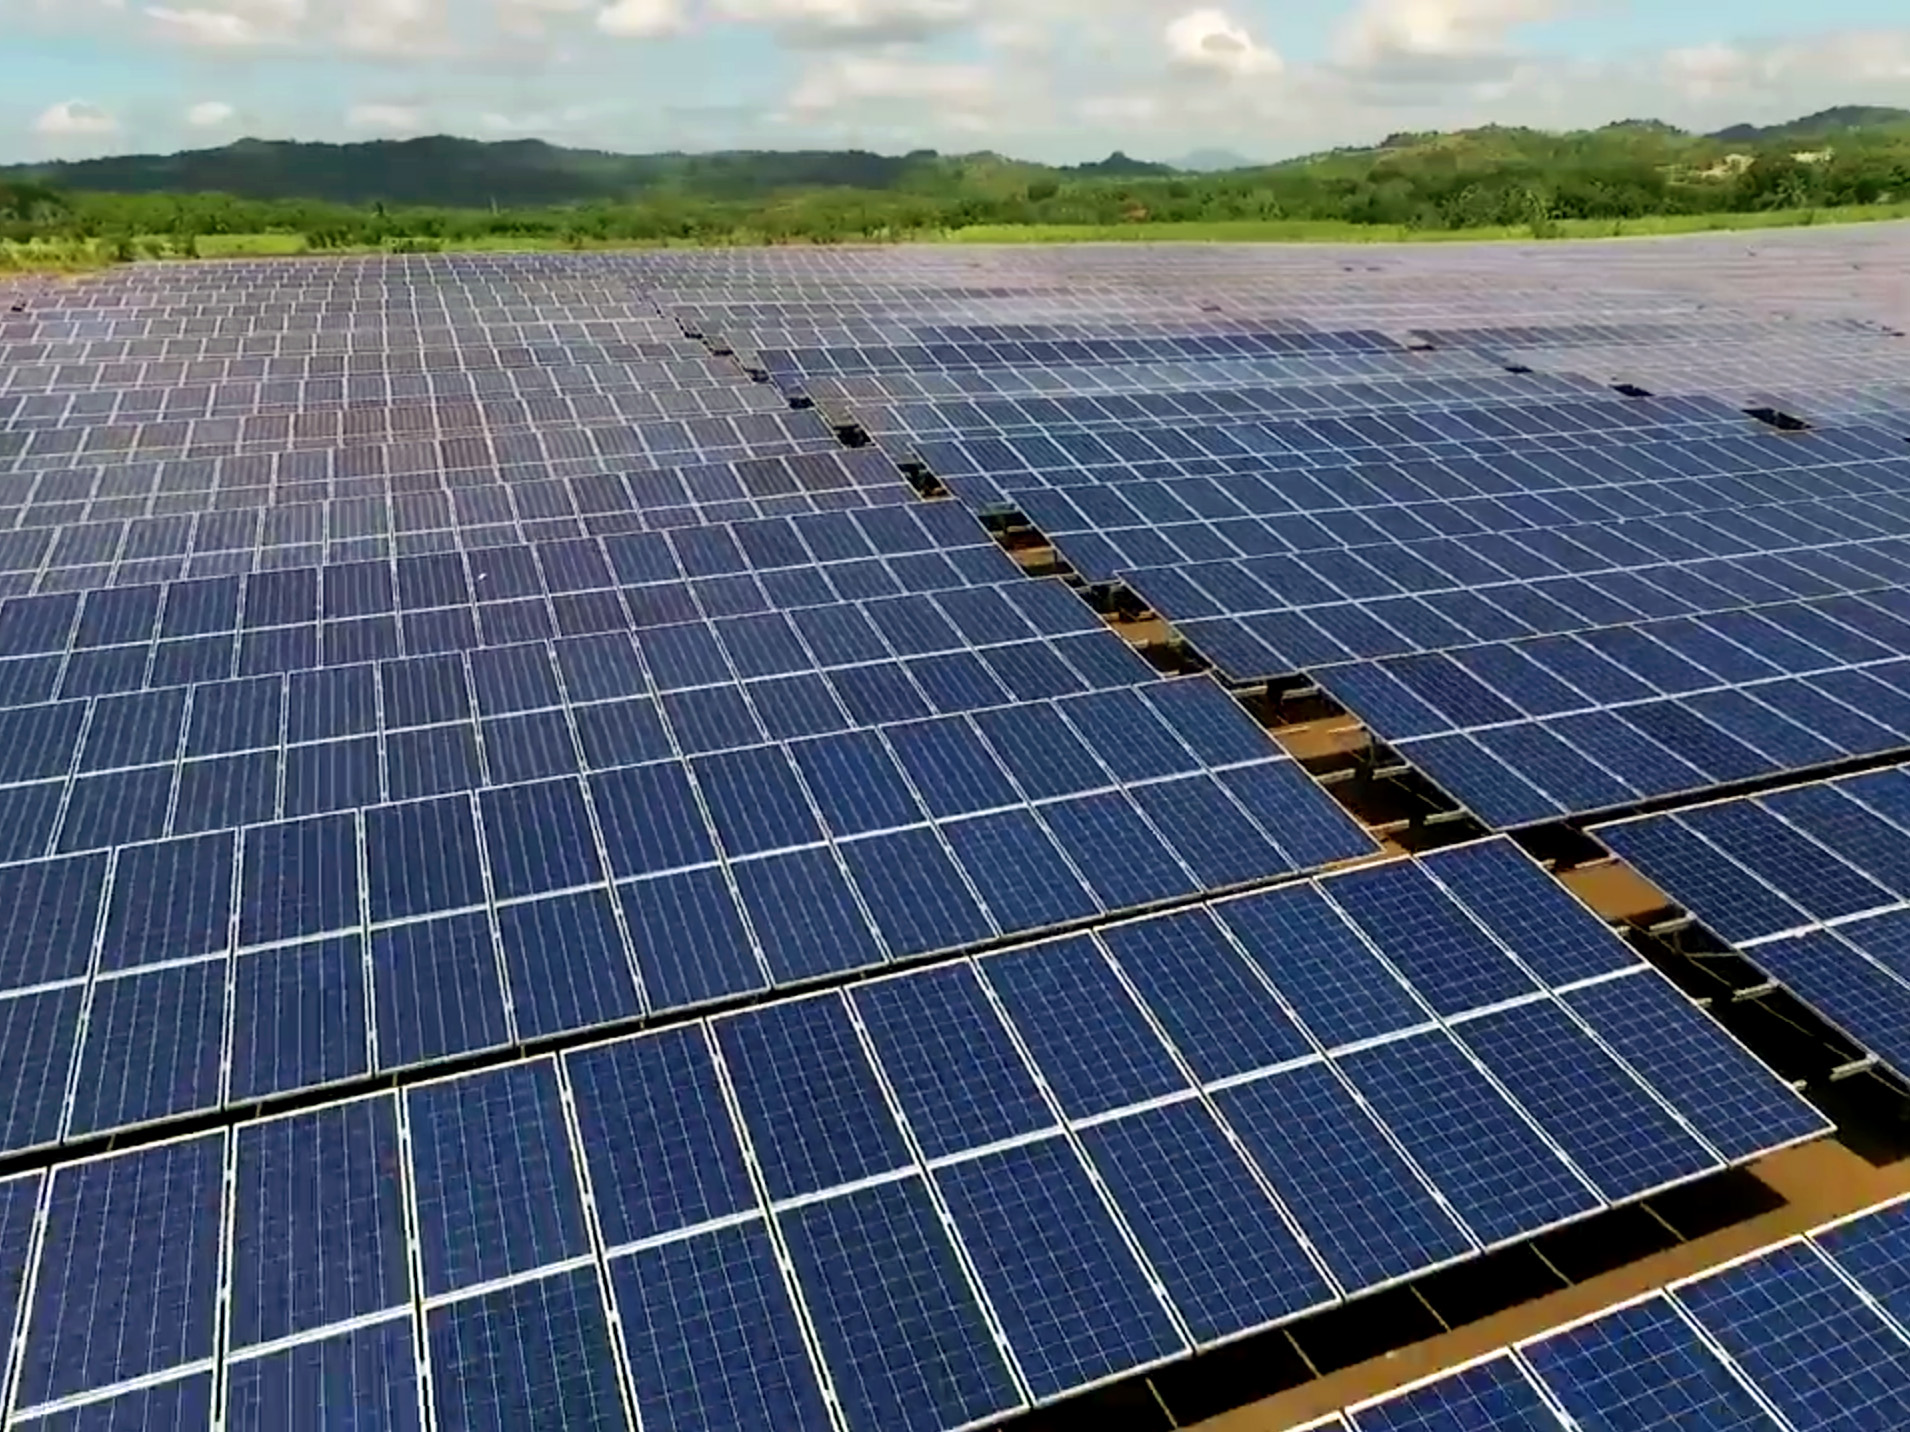 Solar Philippines to build 2GW solar power project